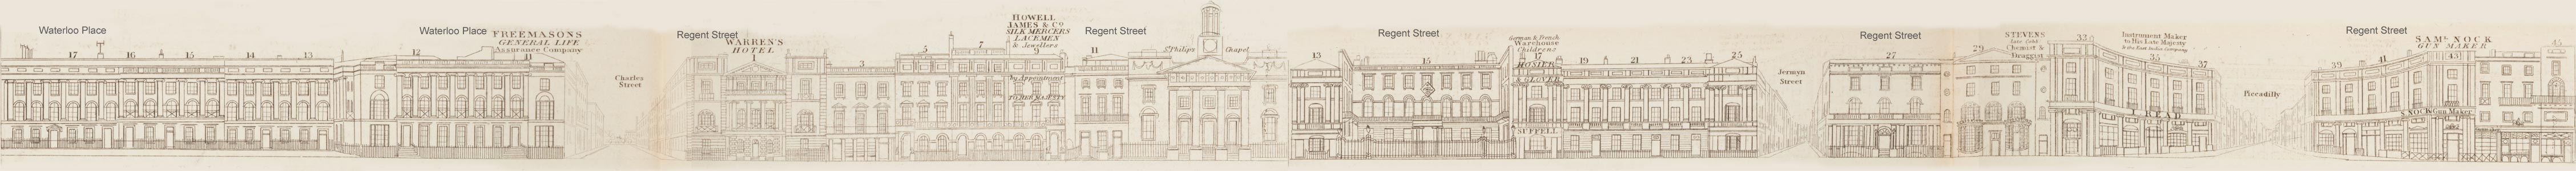 map - Tallis's London street views : No. 17. Regent Street, division 4 (west)